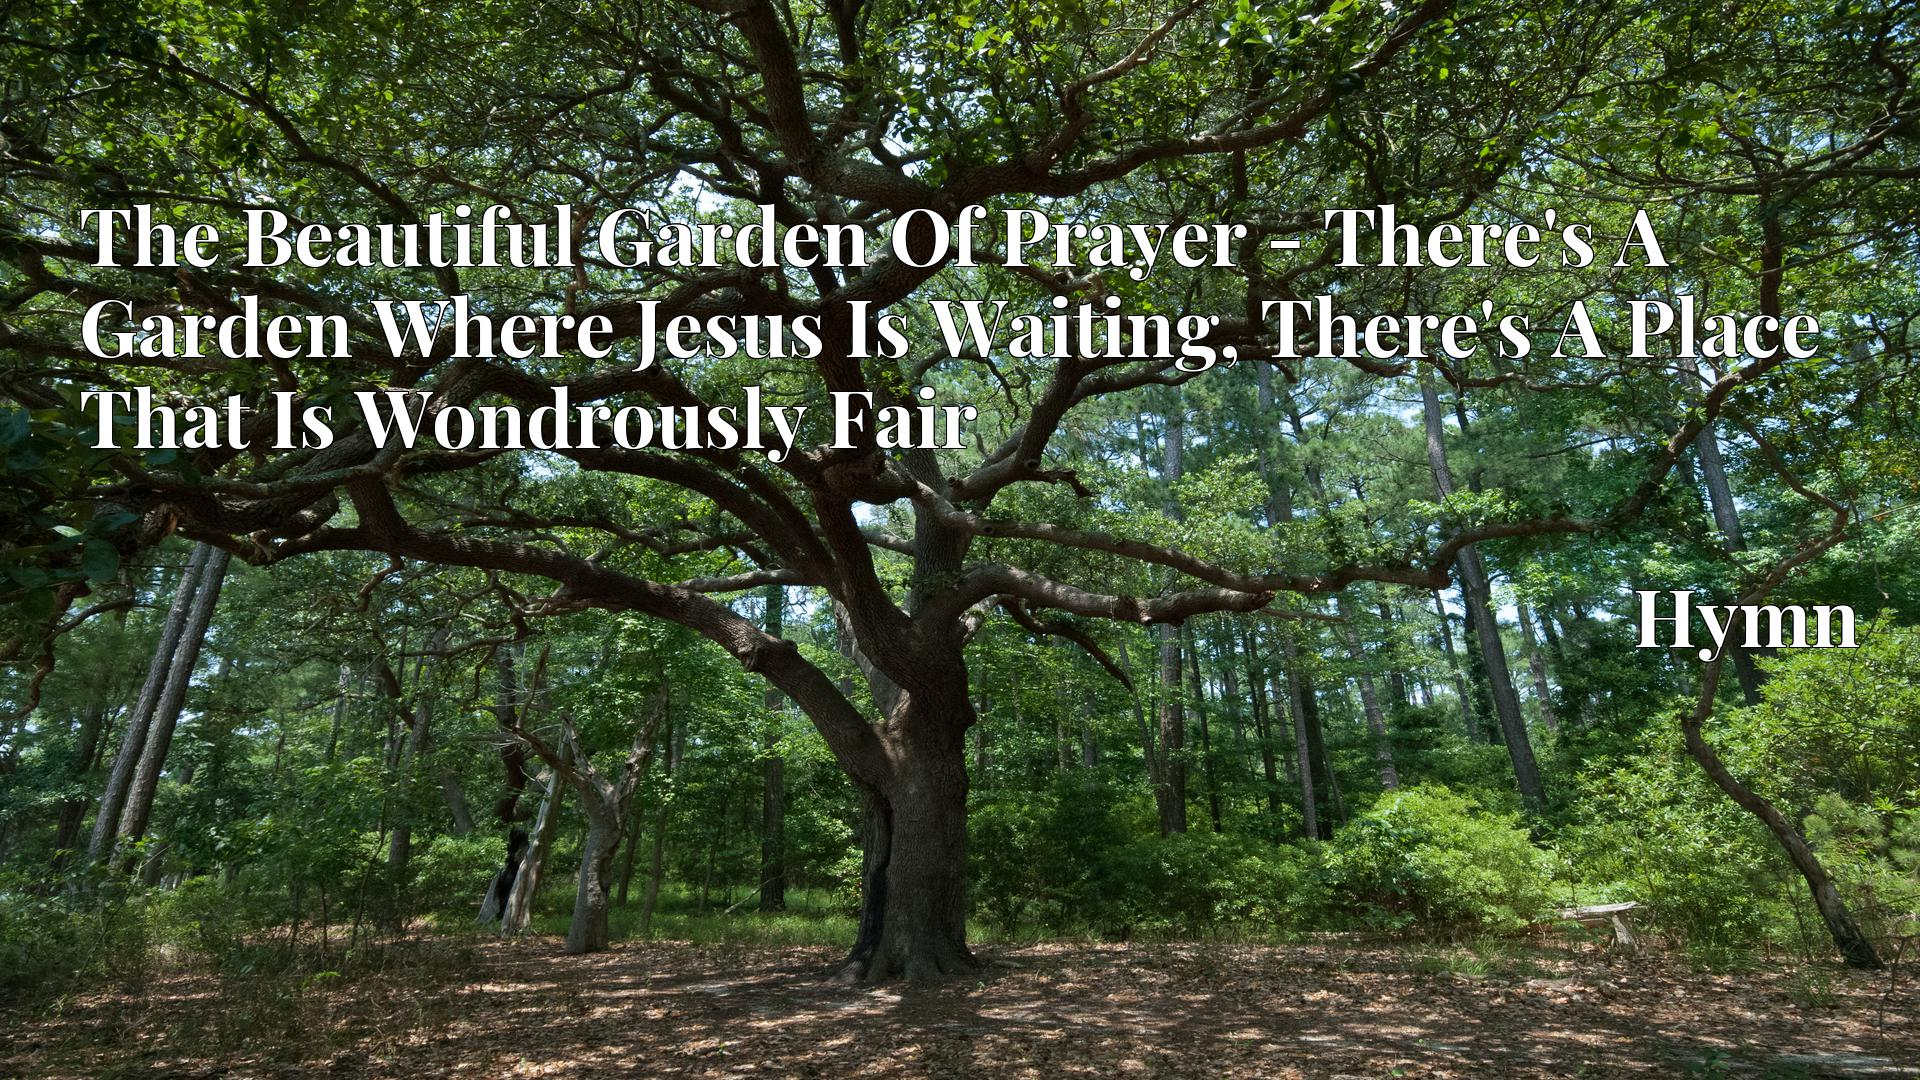 The Beautiful Garden Of Prayer - There's A Garden Where Jesus Is Waiting, There's A Place That Is Wondrously Fair - Hymn